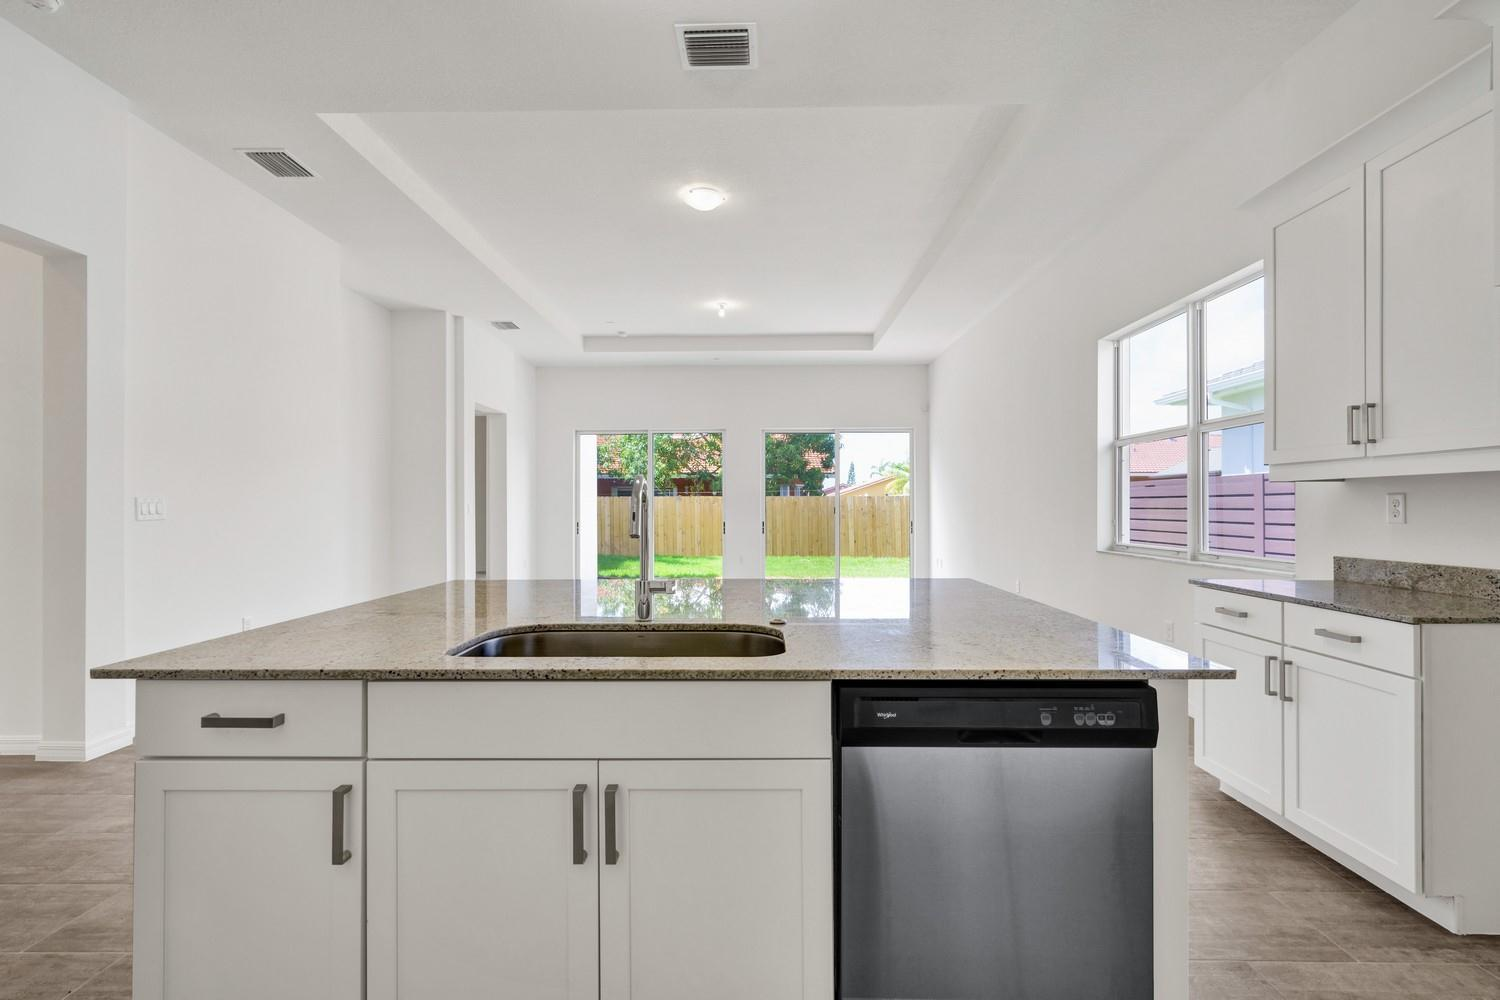 Kitchen featured in the Aria 10XL By Luxcom Builders in Miami-Dade County, FL